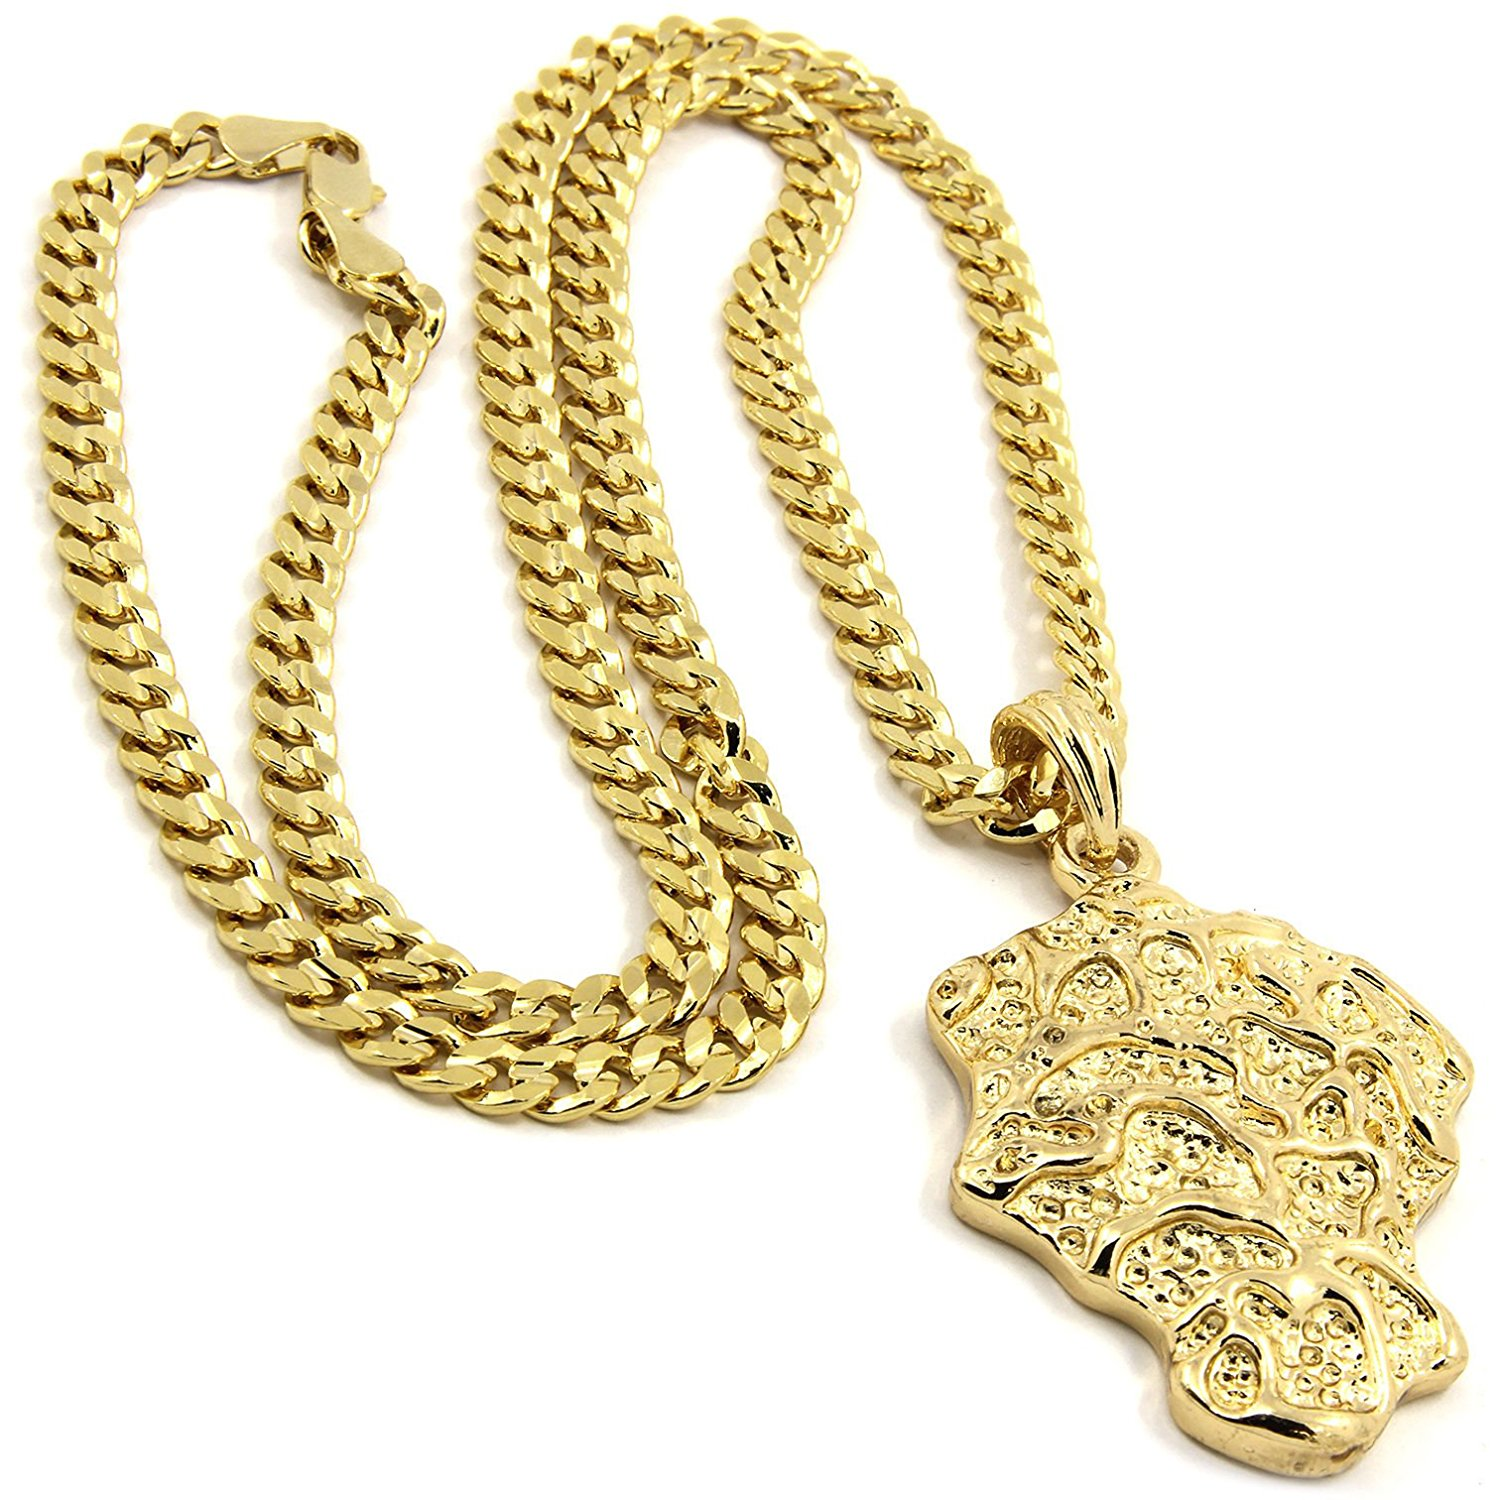 00601925b9290 Cheap Gold Nugget Chain, find Gold Nugget Chain deals on line at ...